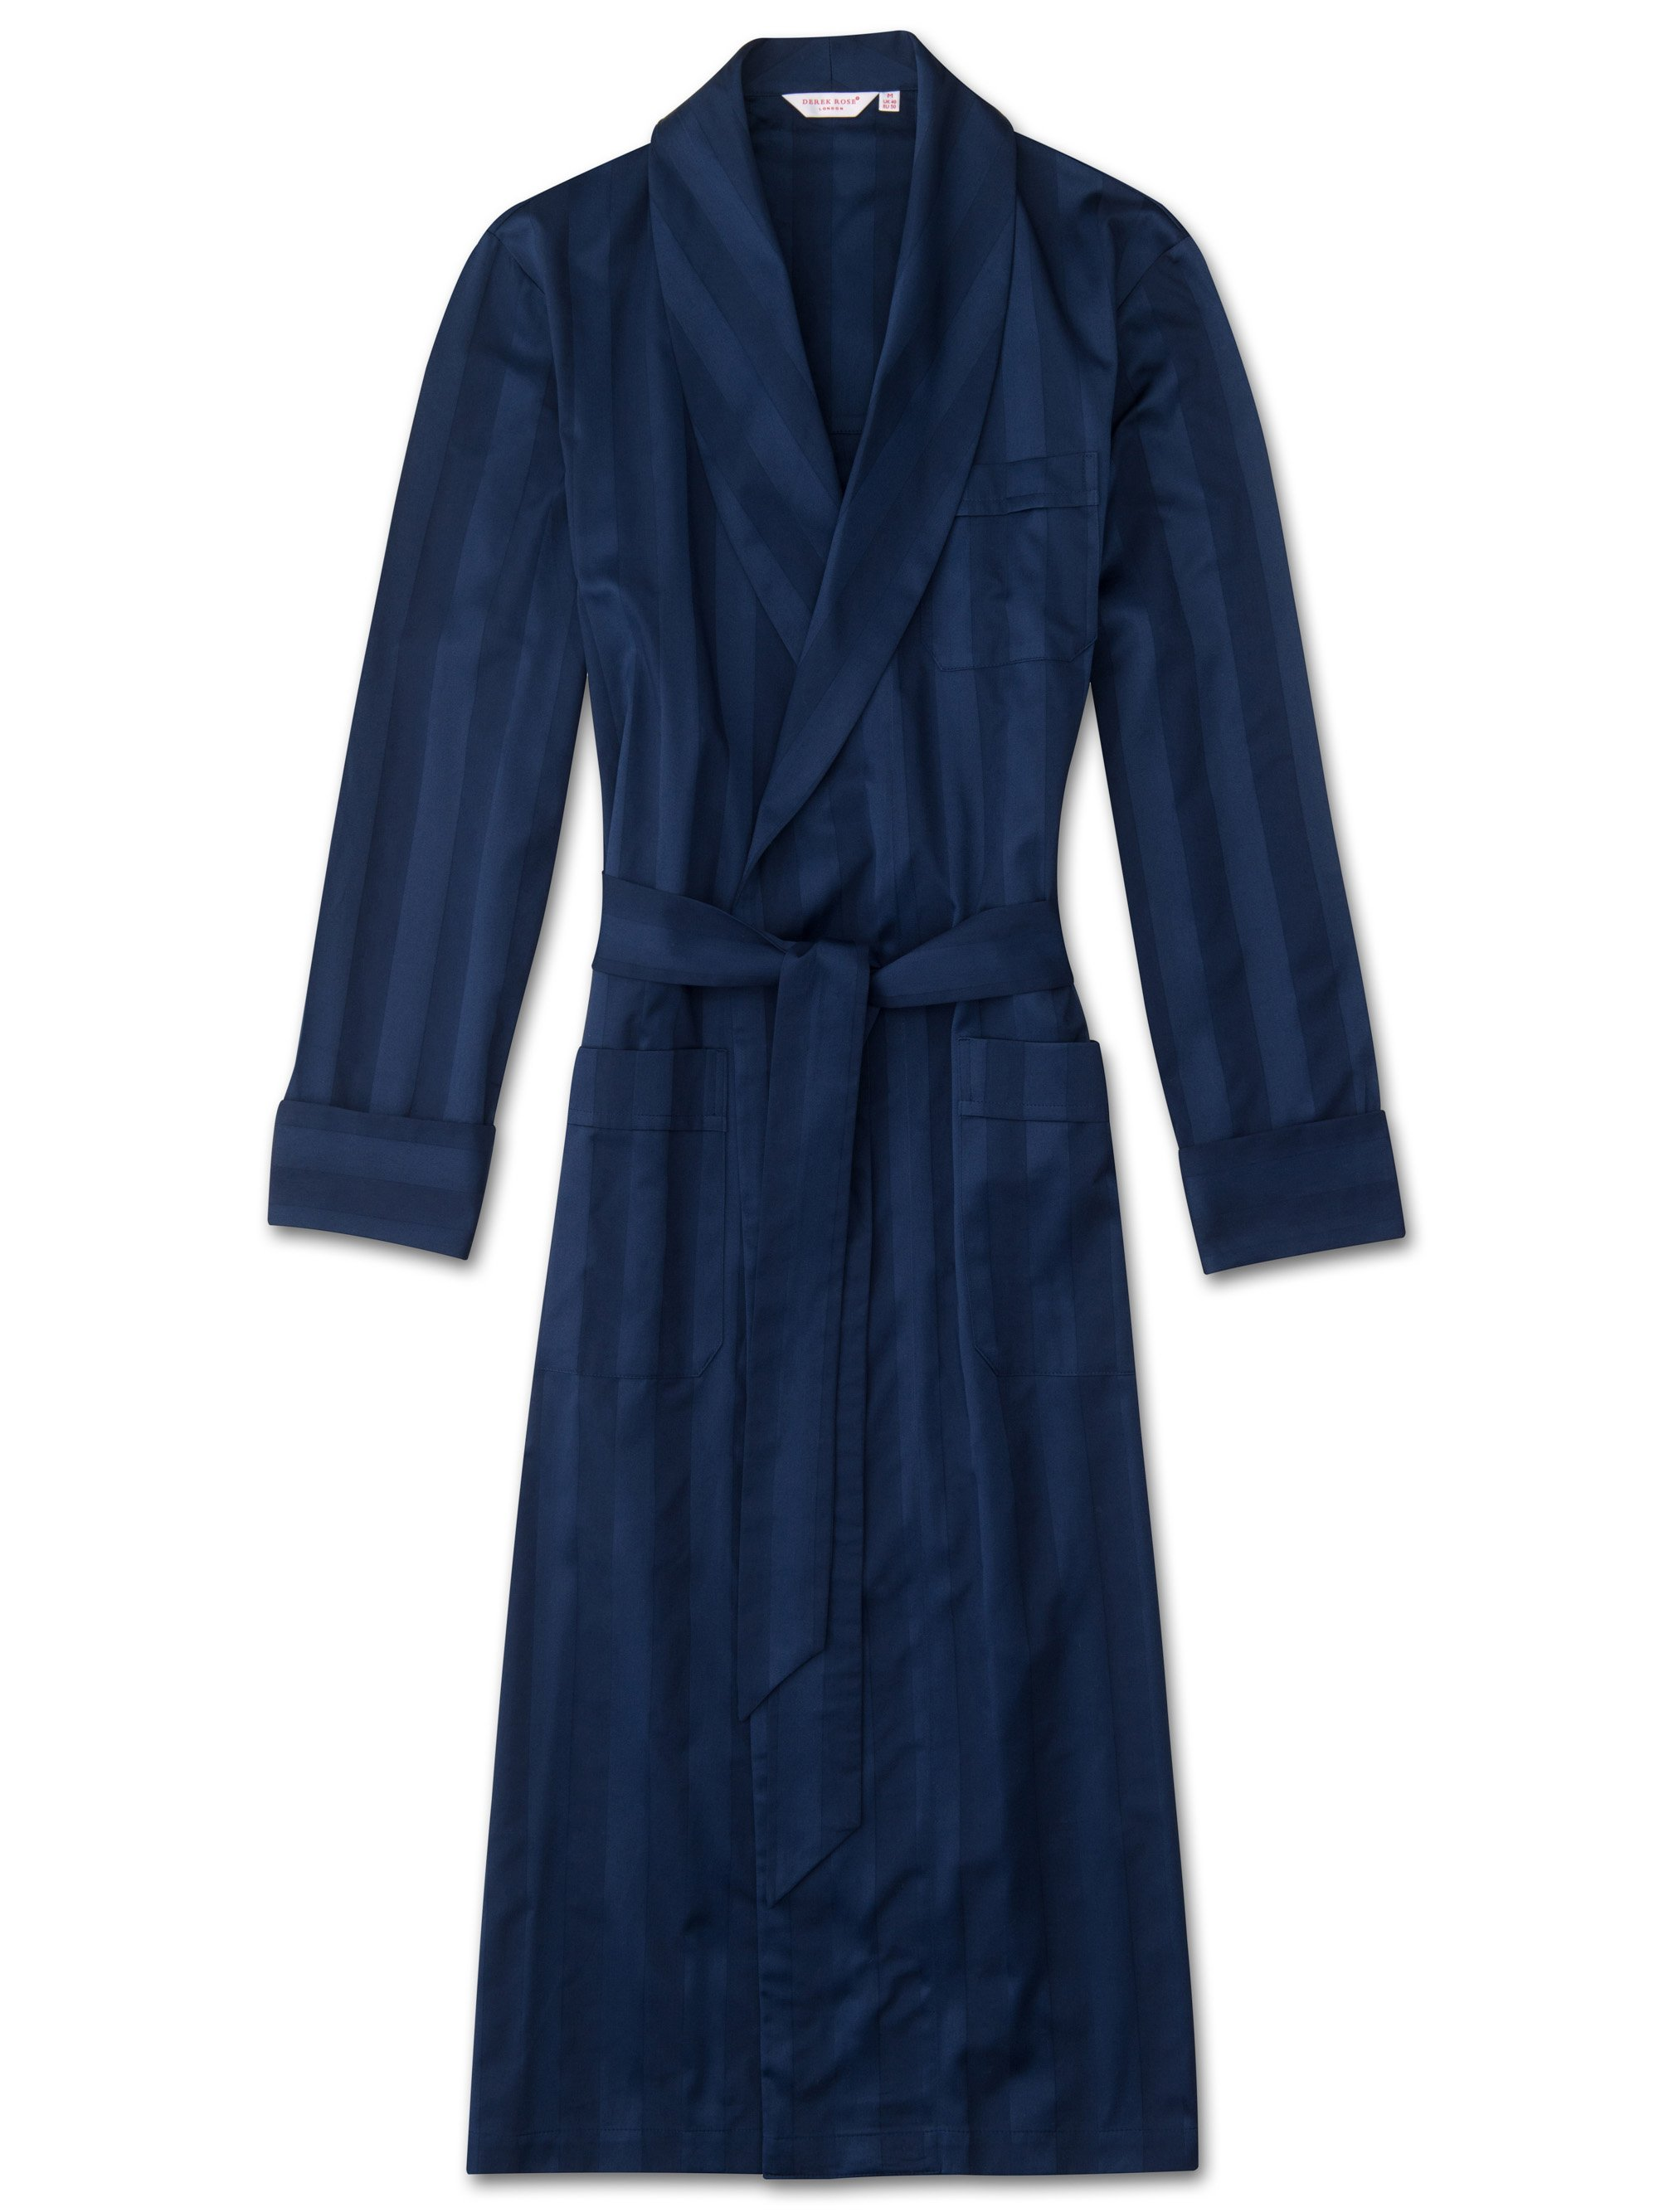 Men's Classic Dressing Gown Lingfield Cotton Satin Stripe Navy